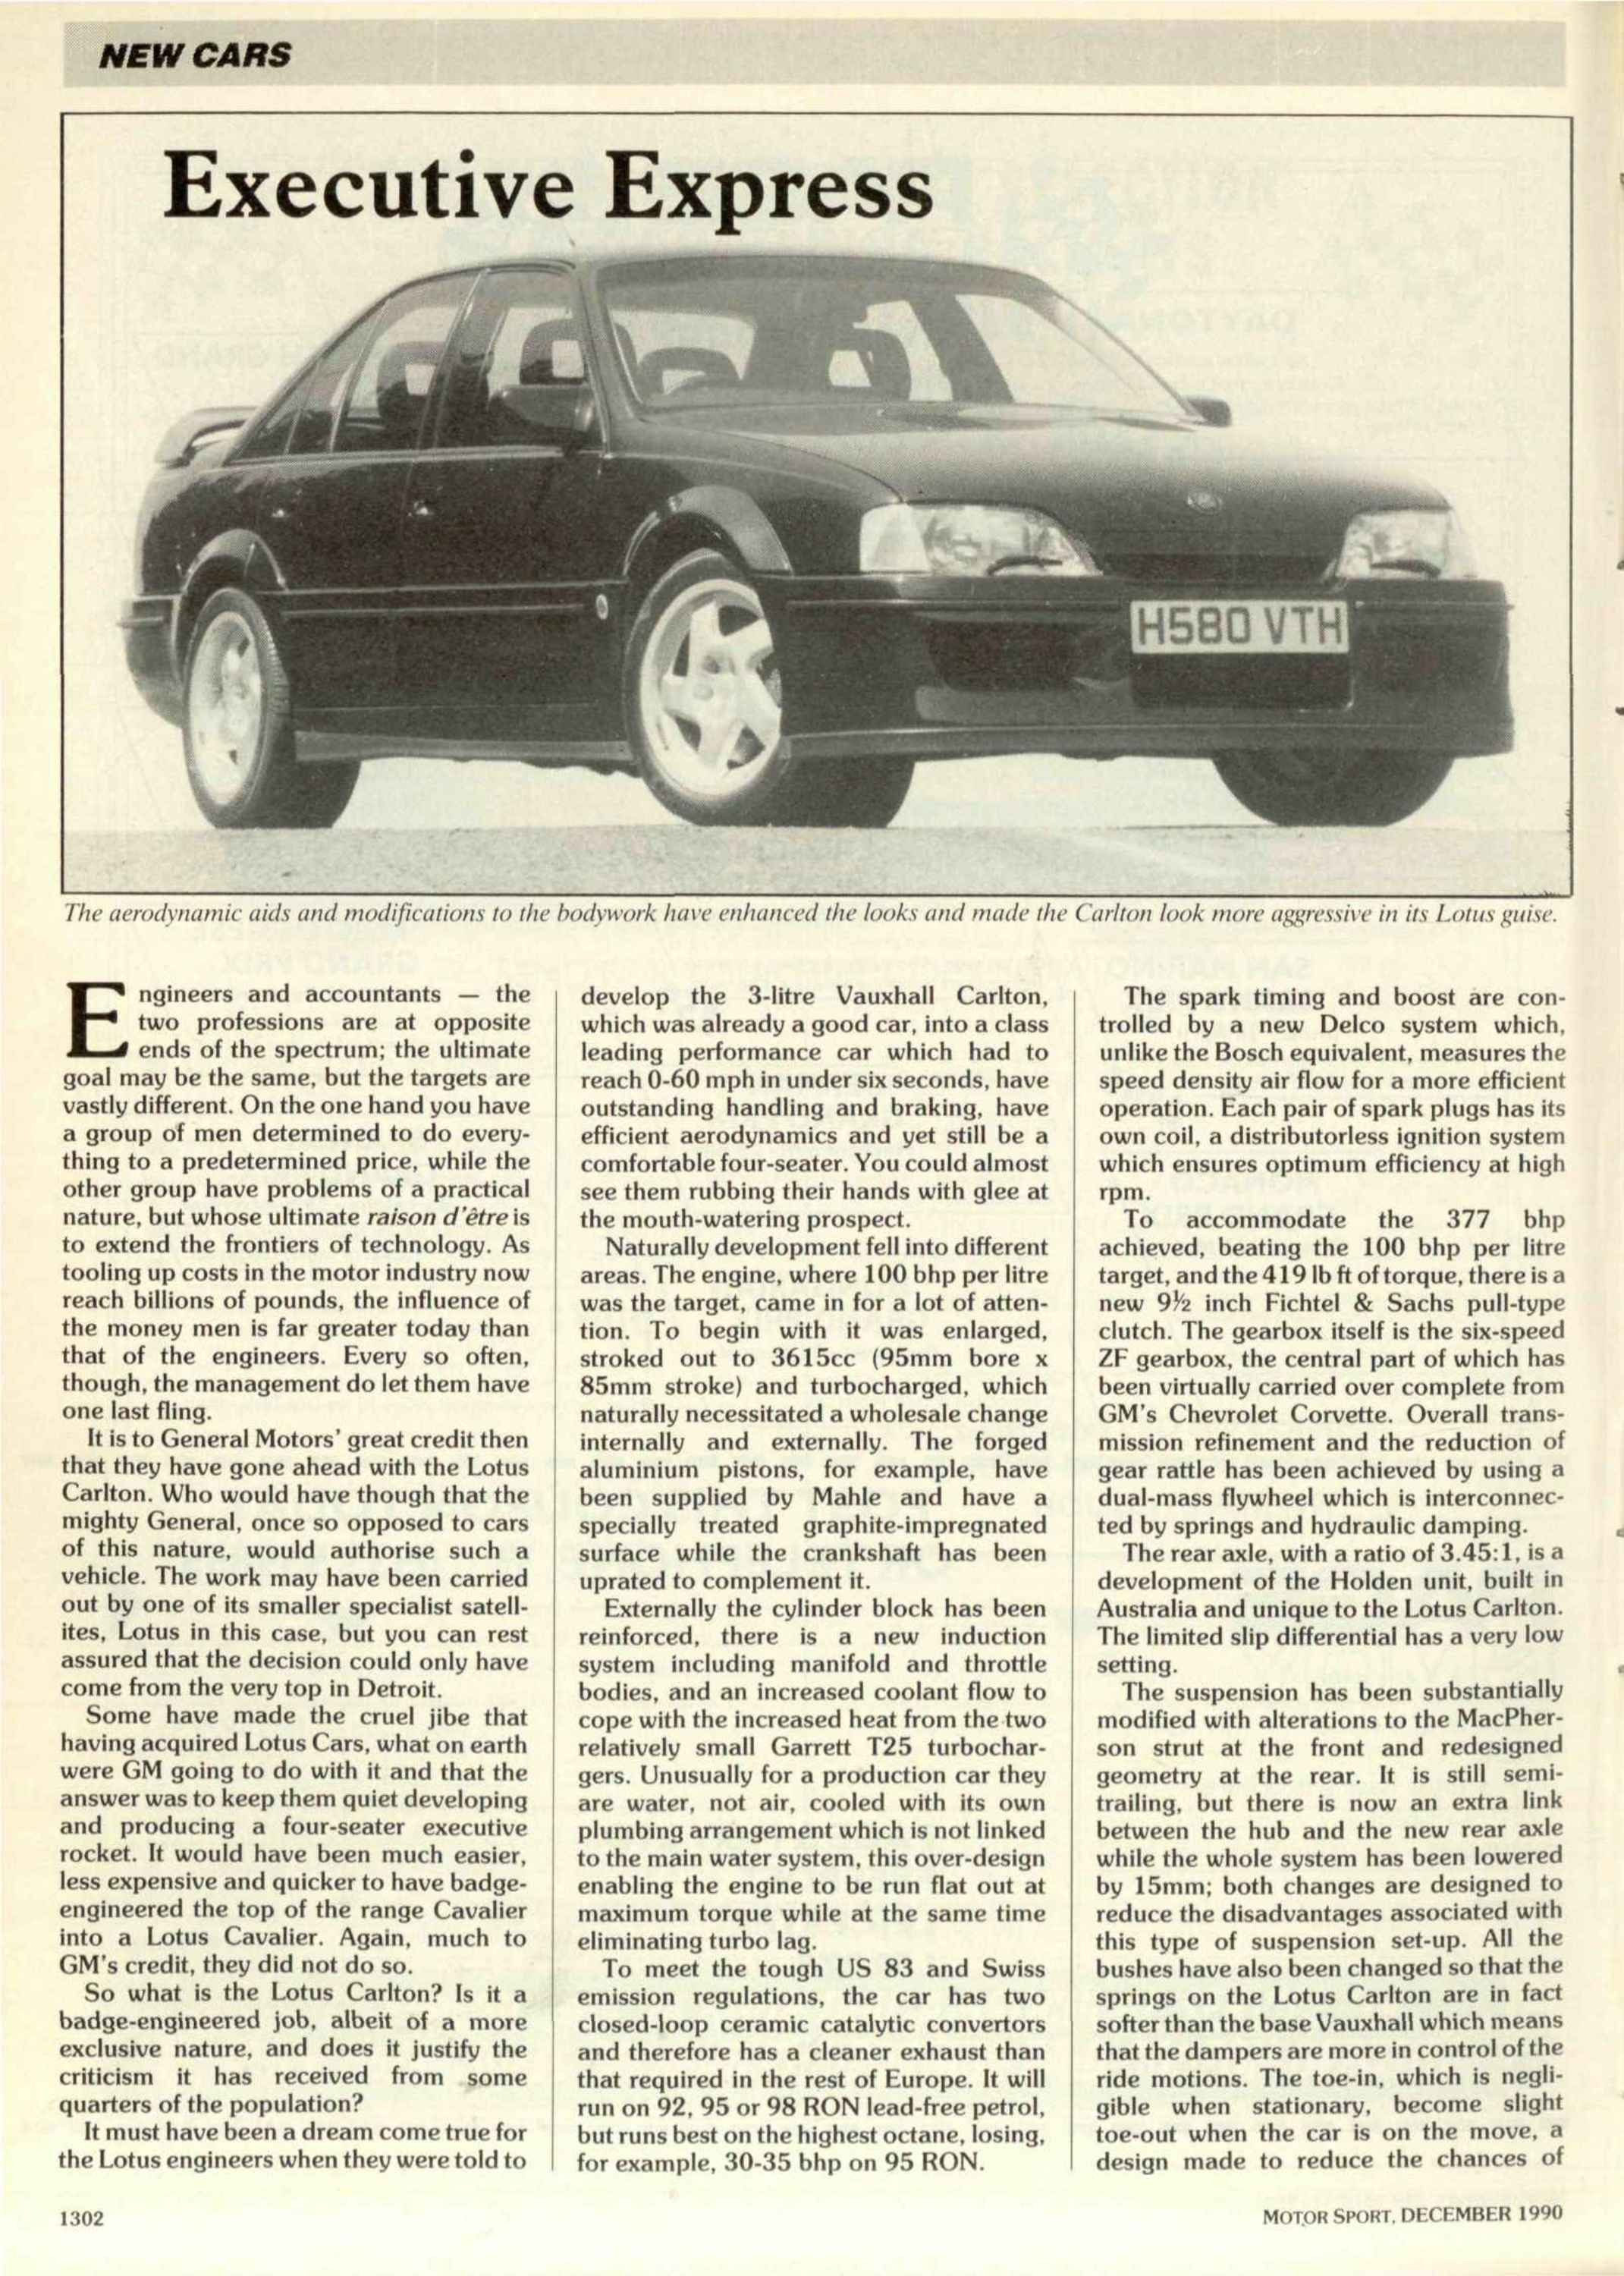 New Cars - Vauxhall Lotus Carlton | Motor Sport Magazine Archive